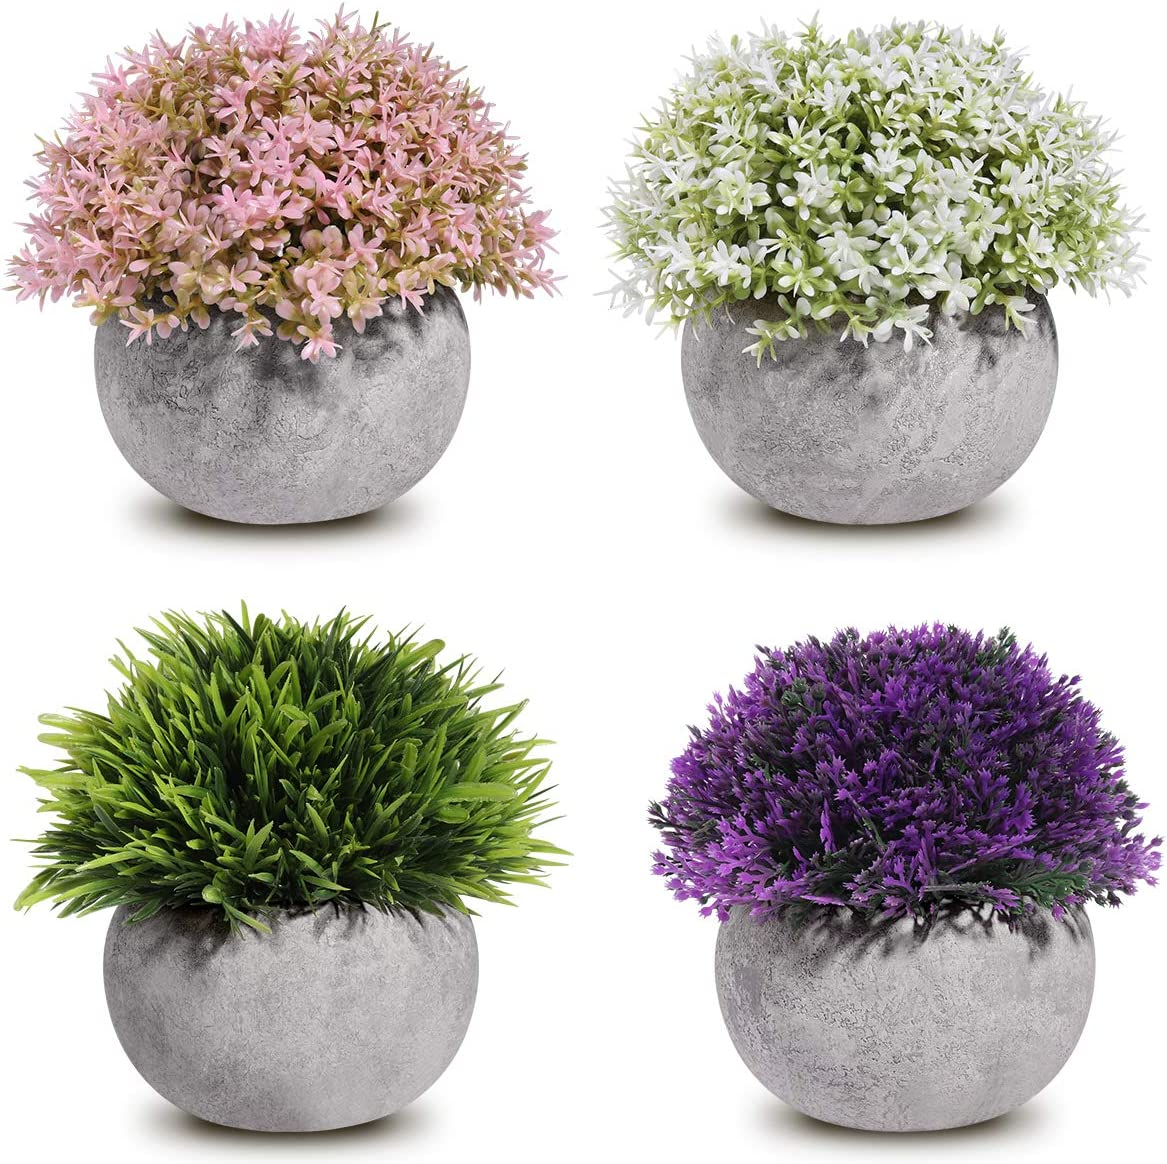 Homemaxs Fake Plants Mini Artificial Plants Potted 4 Pack Topiary Shrubs Plastic Plants for Home Decor